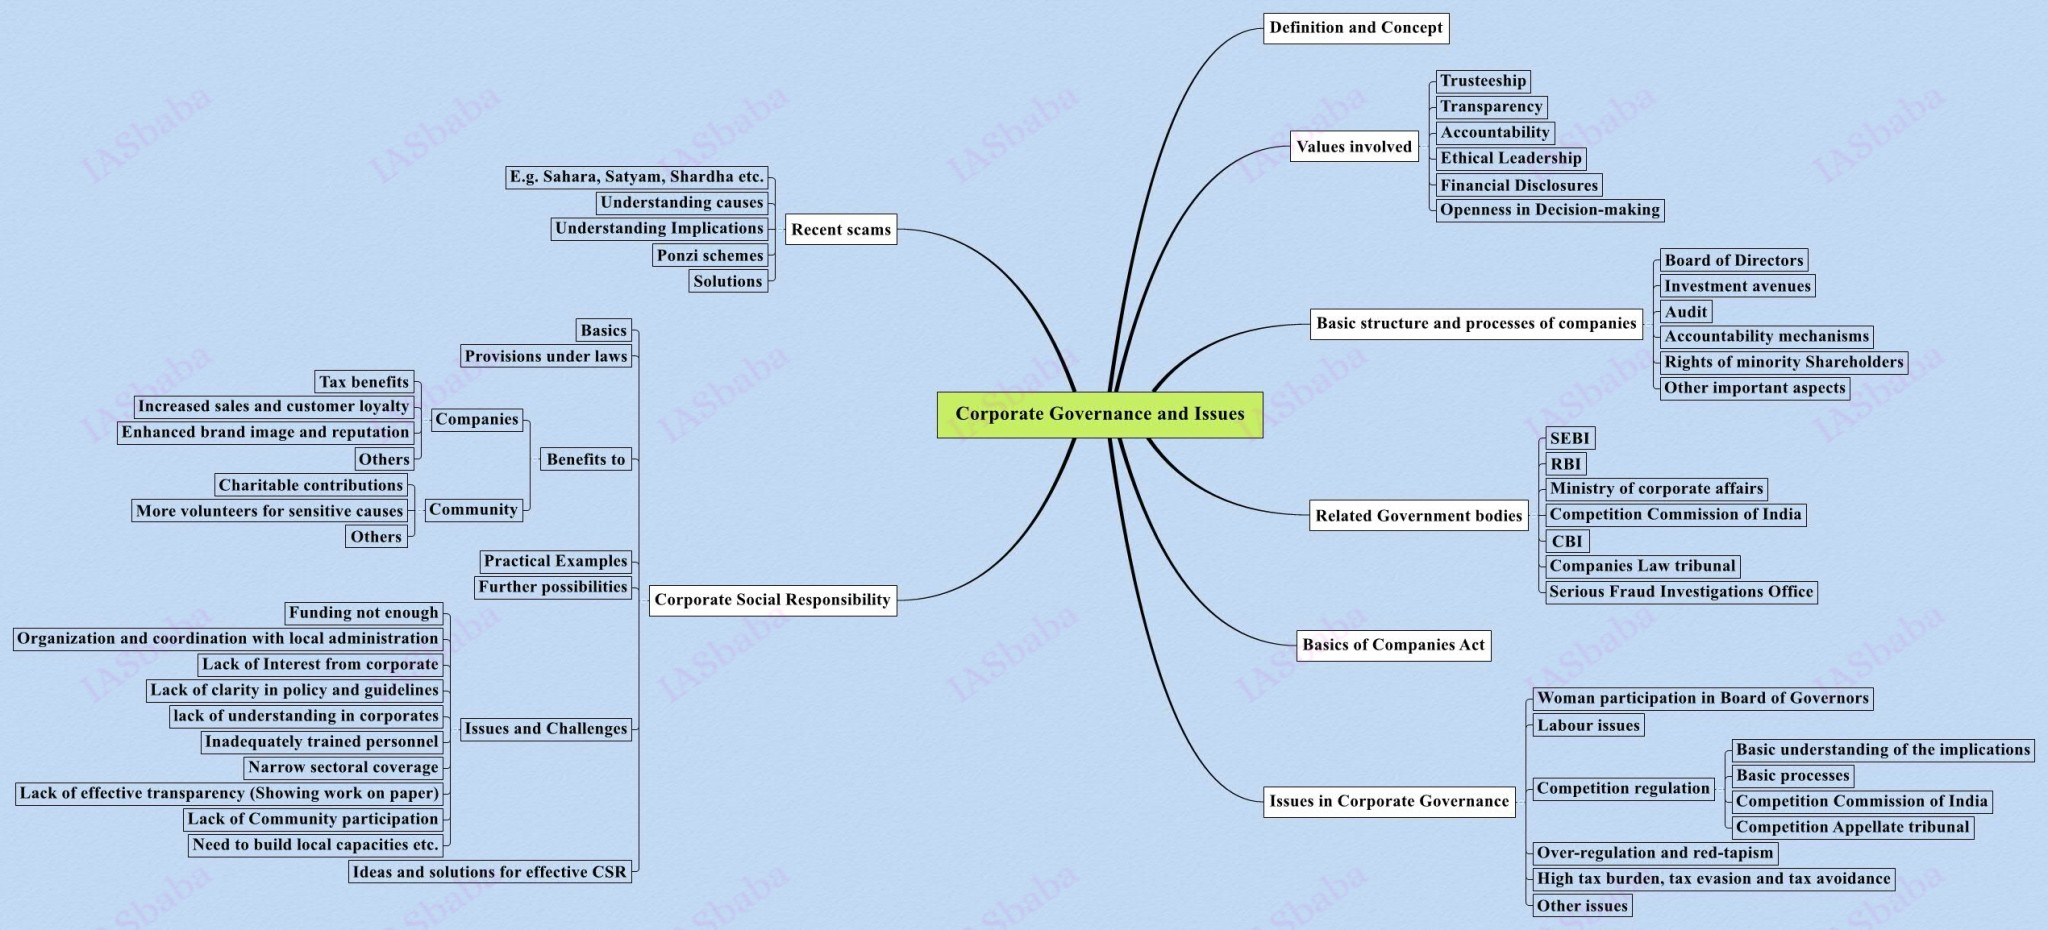 corporate governance and issues  previous image